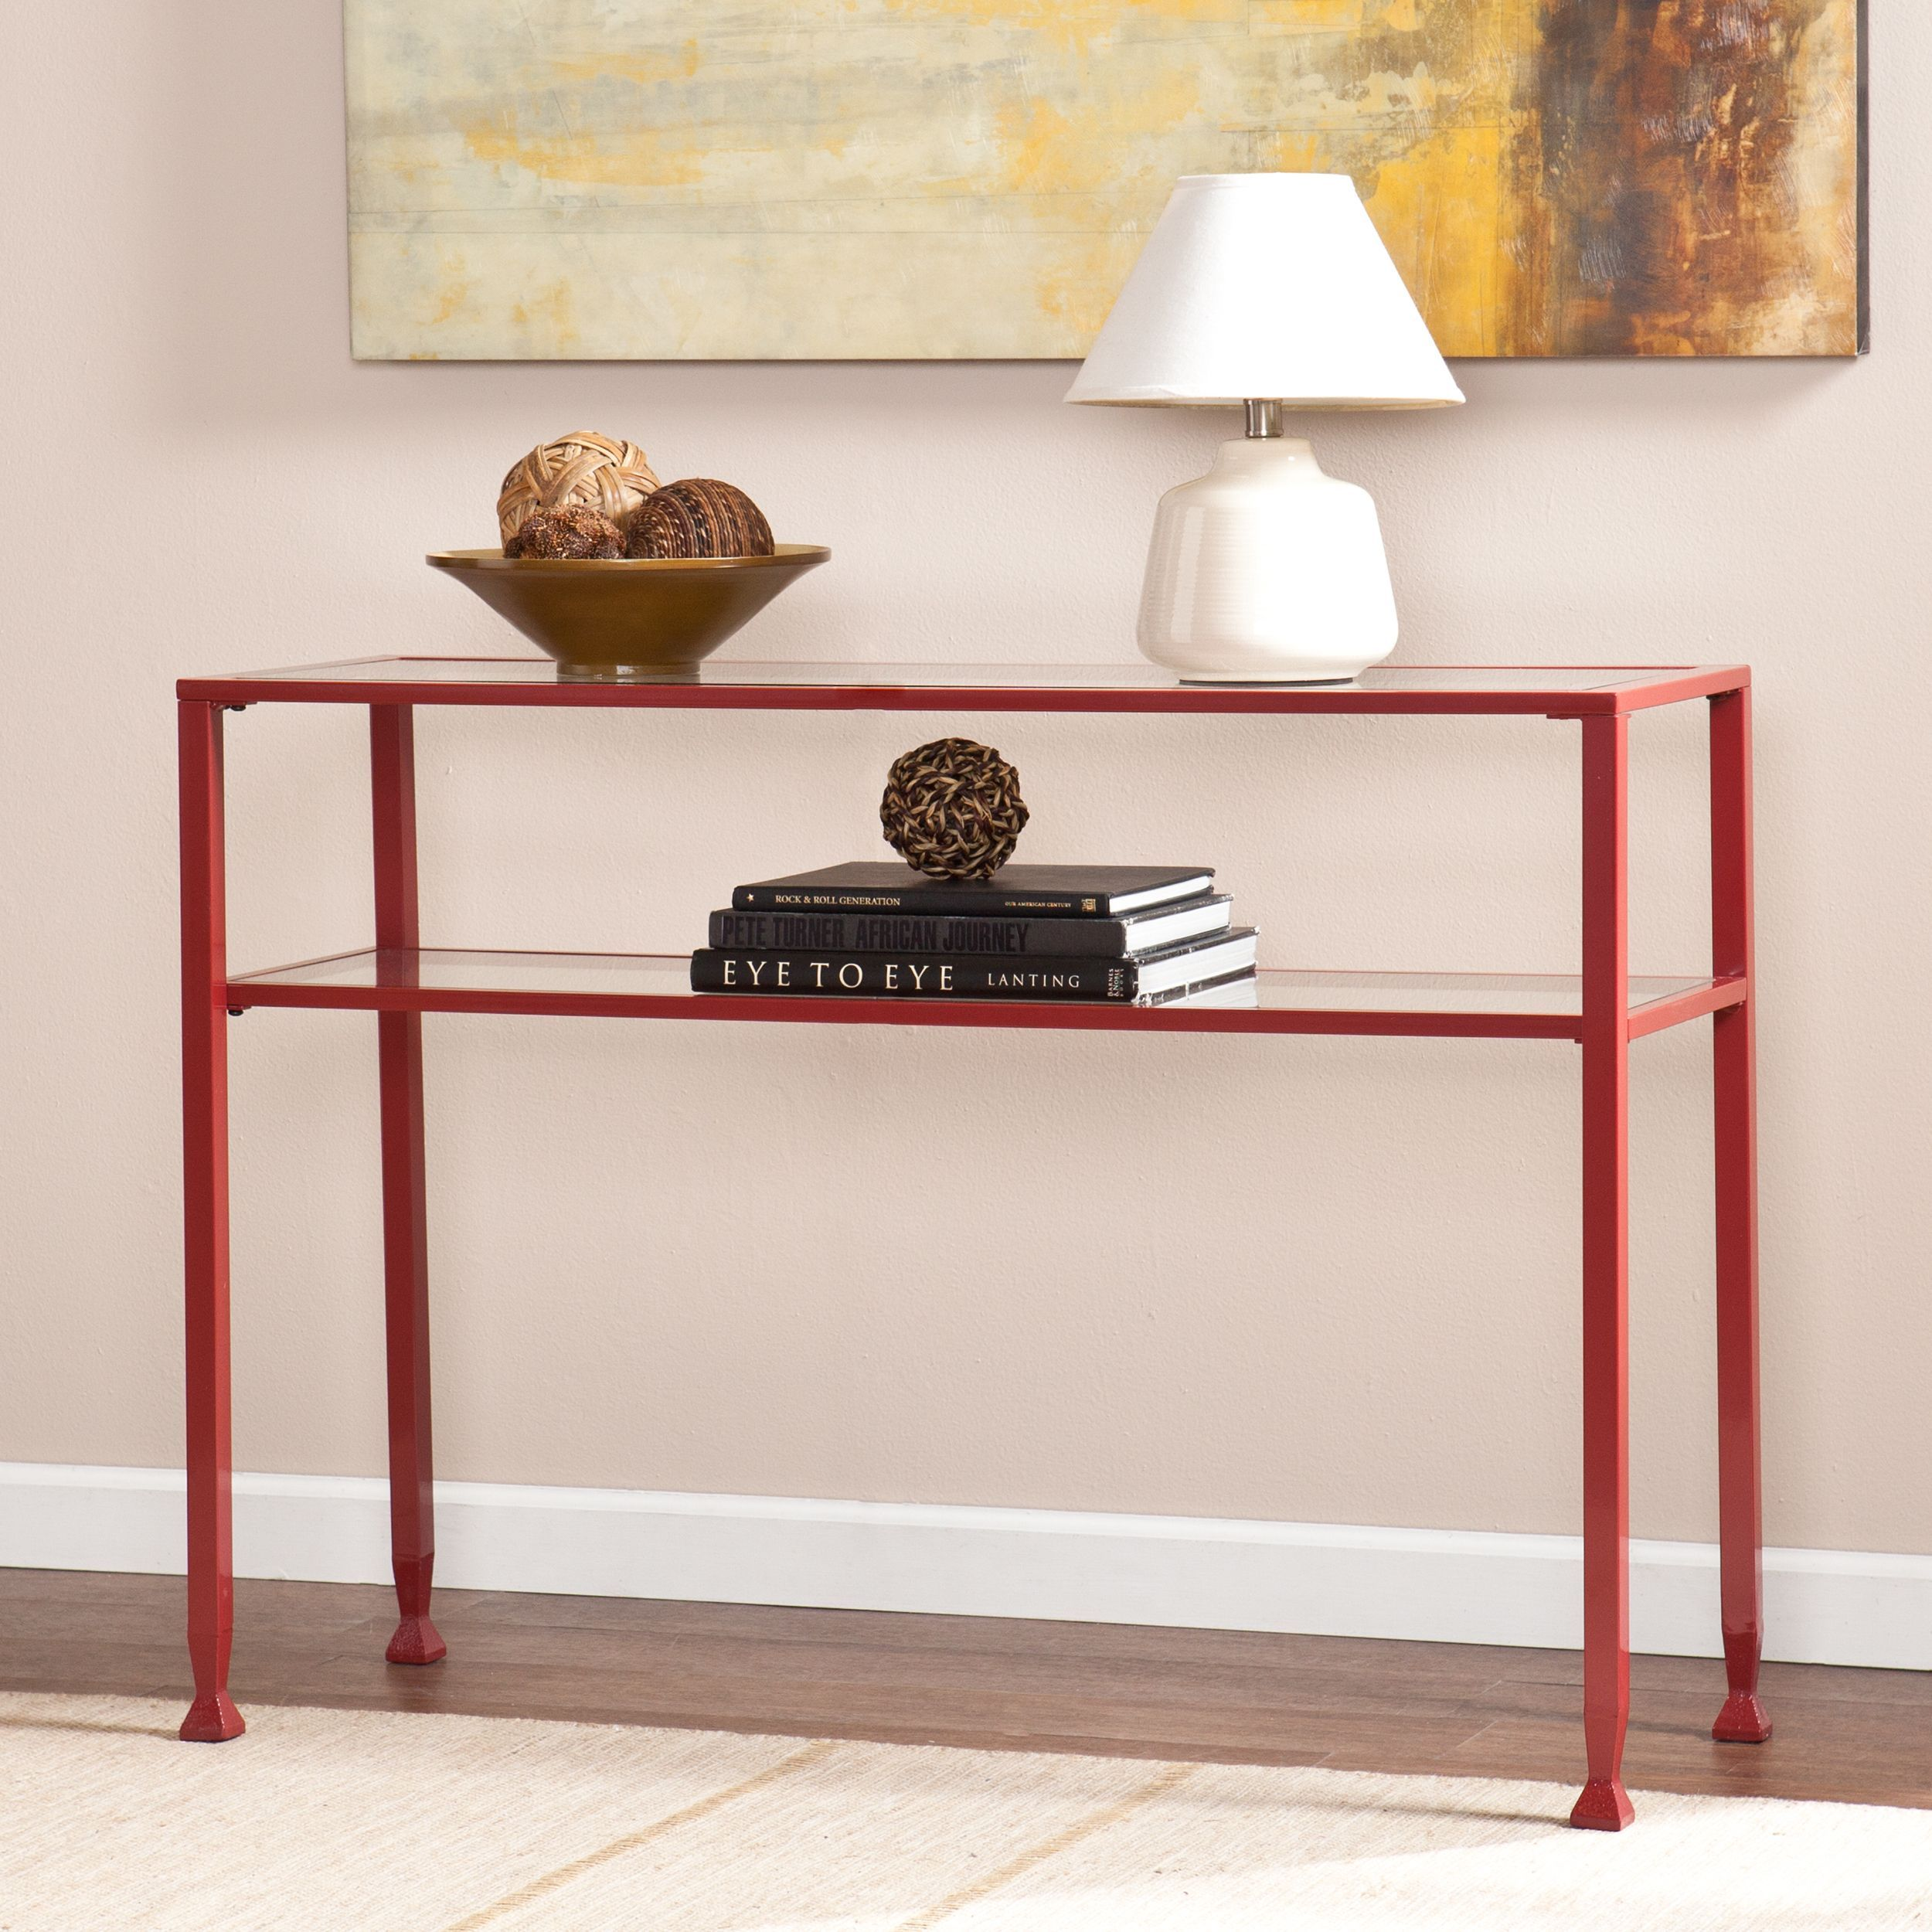 Upton home red metal and glass sofa console table overstock upton home red metal and glass sofa console table overstock shopping great deals geotapseo Images